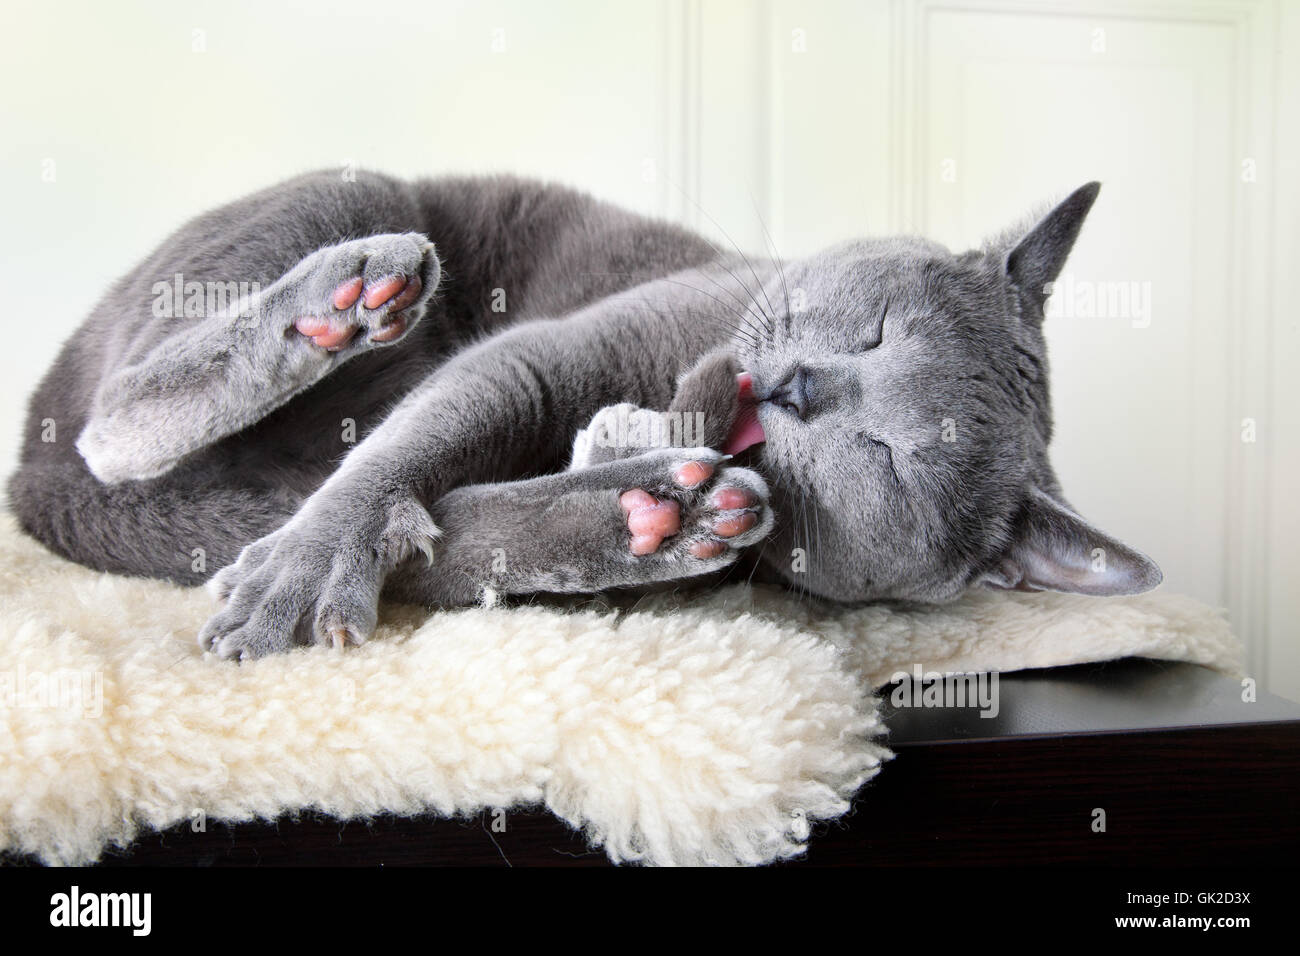 cat's lick - Stock Image